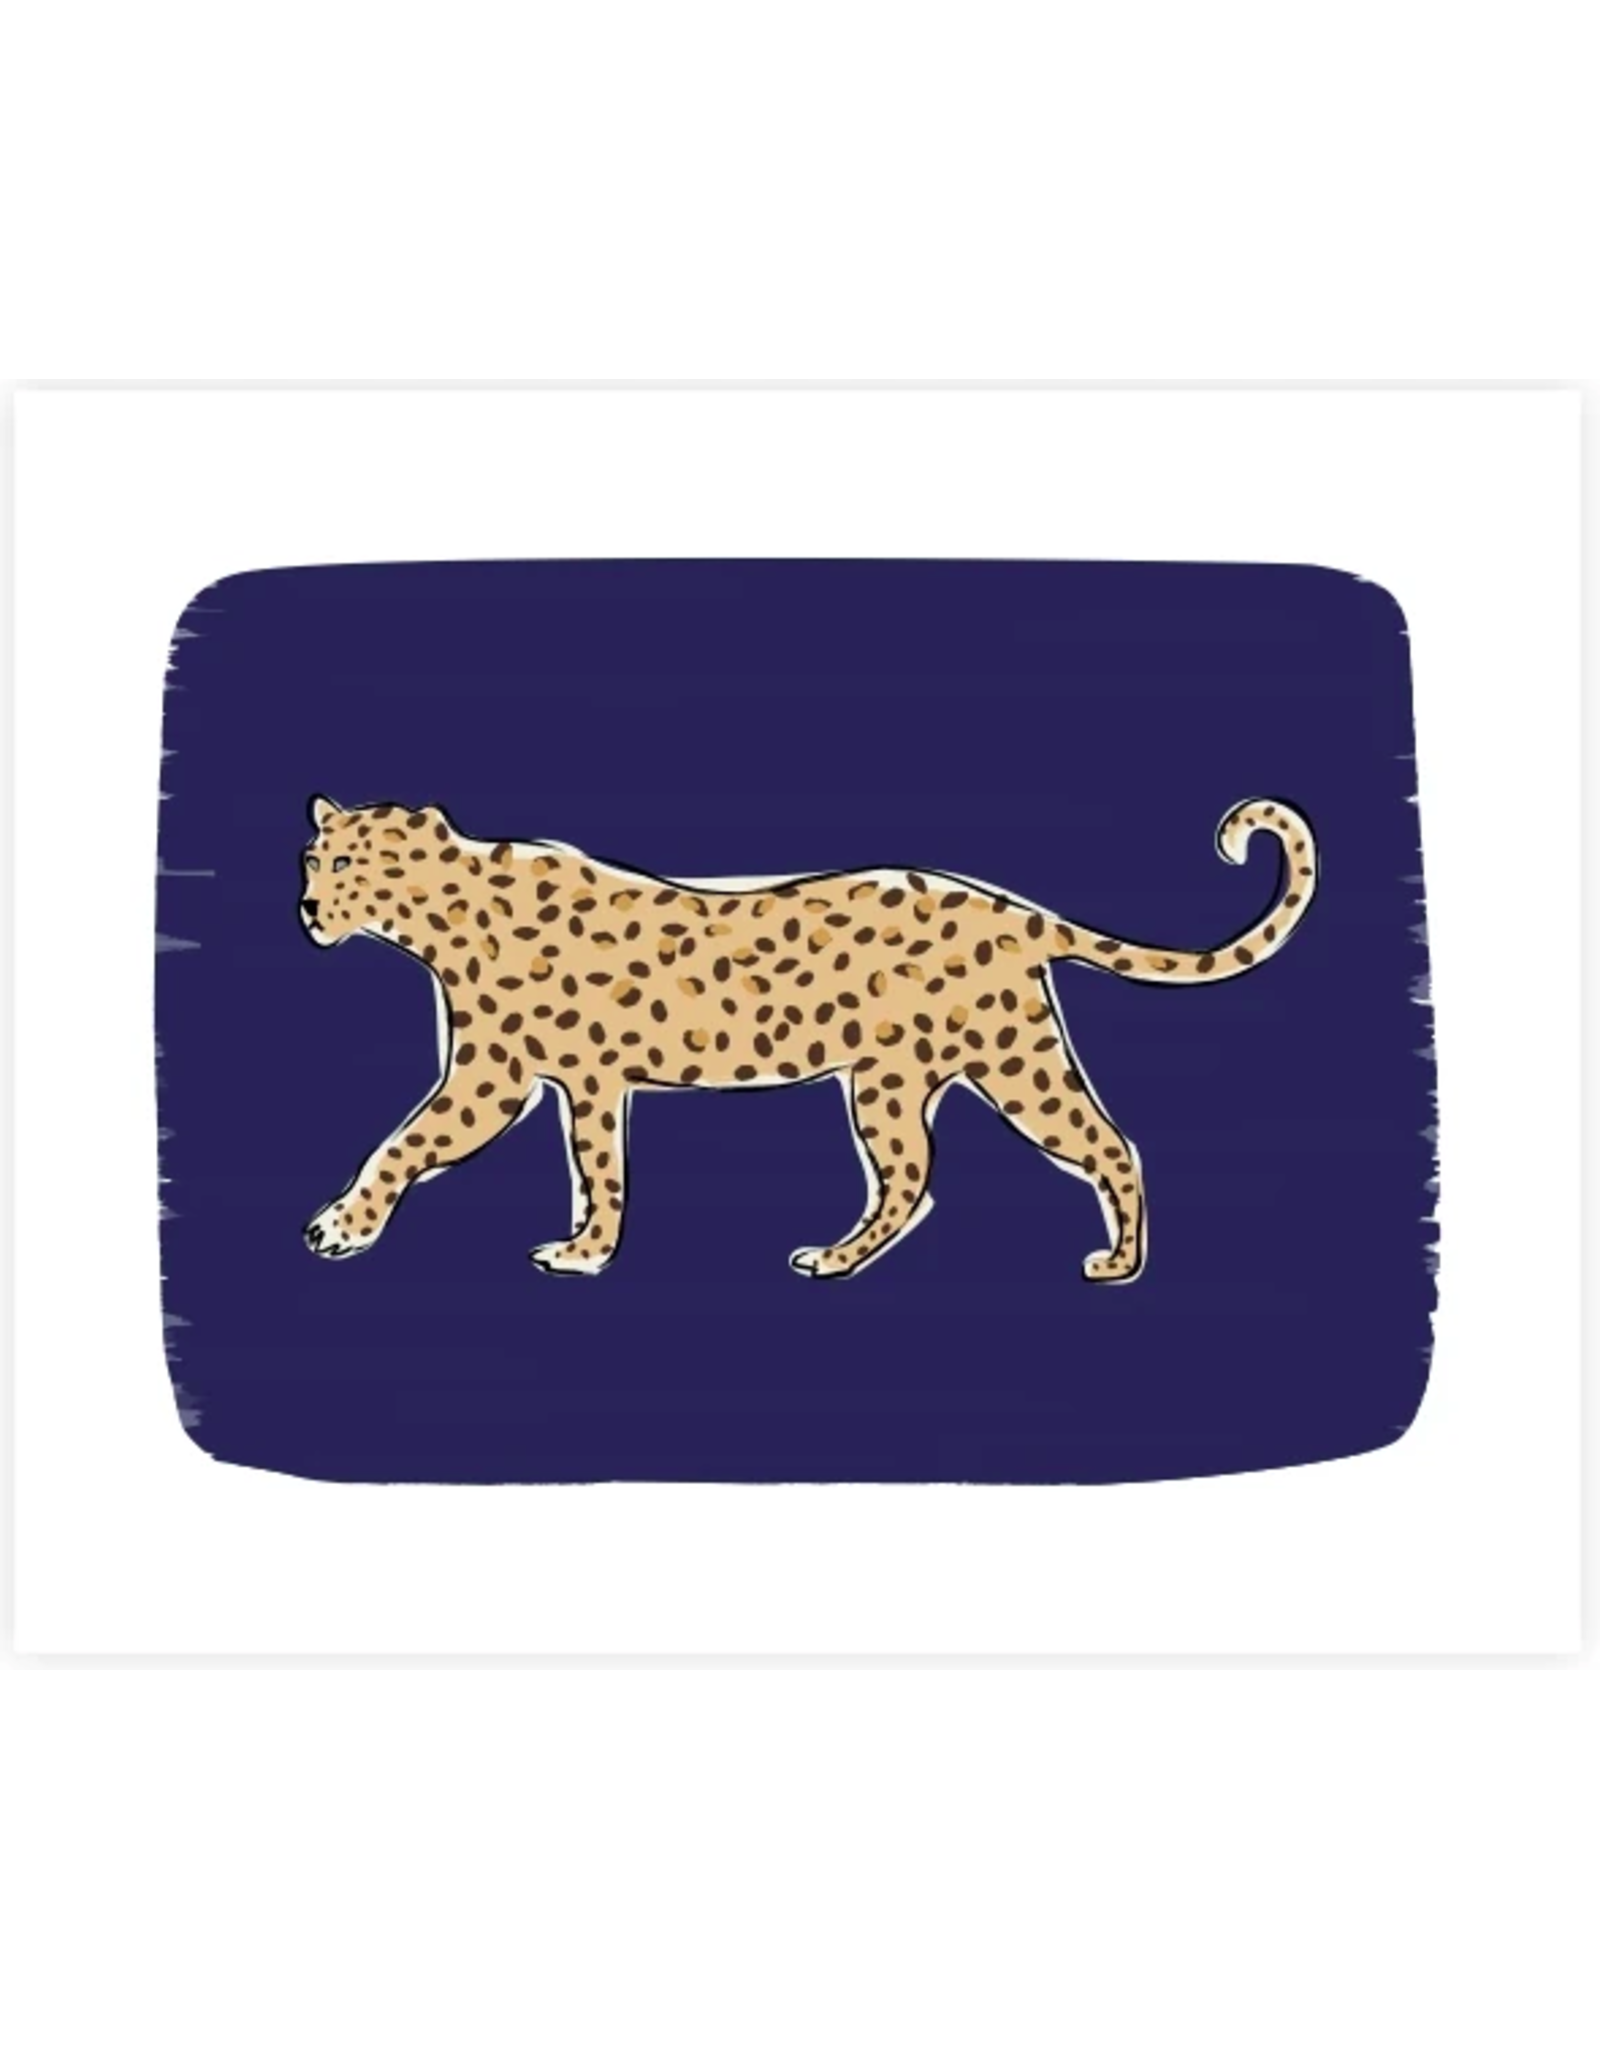 Clairebella Leopard on Prowl Navy Art Print 8x10